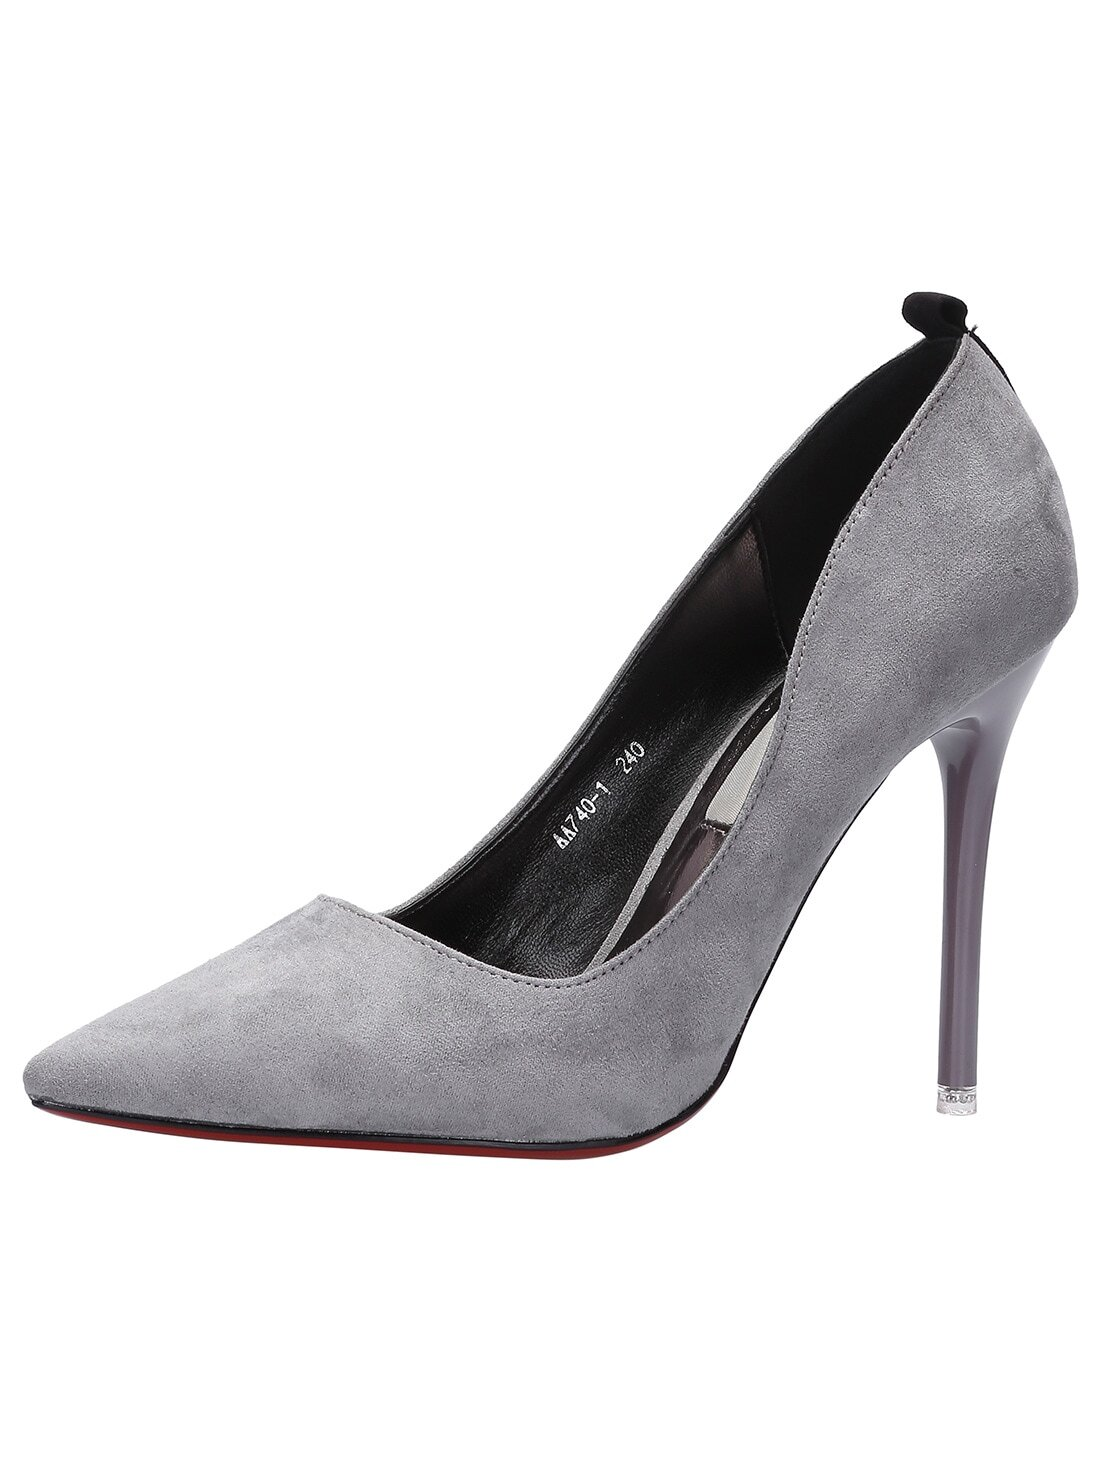 Silver Pumps. Get ready to make a fashionable impression with Gray Heels from Kohl's! Whether you're looking for a new pair of shoes for work, or preparing for a fancy formal occasion, our selection of Gray Pumps offers just what you need to add a new dimension to your wardrobe.